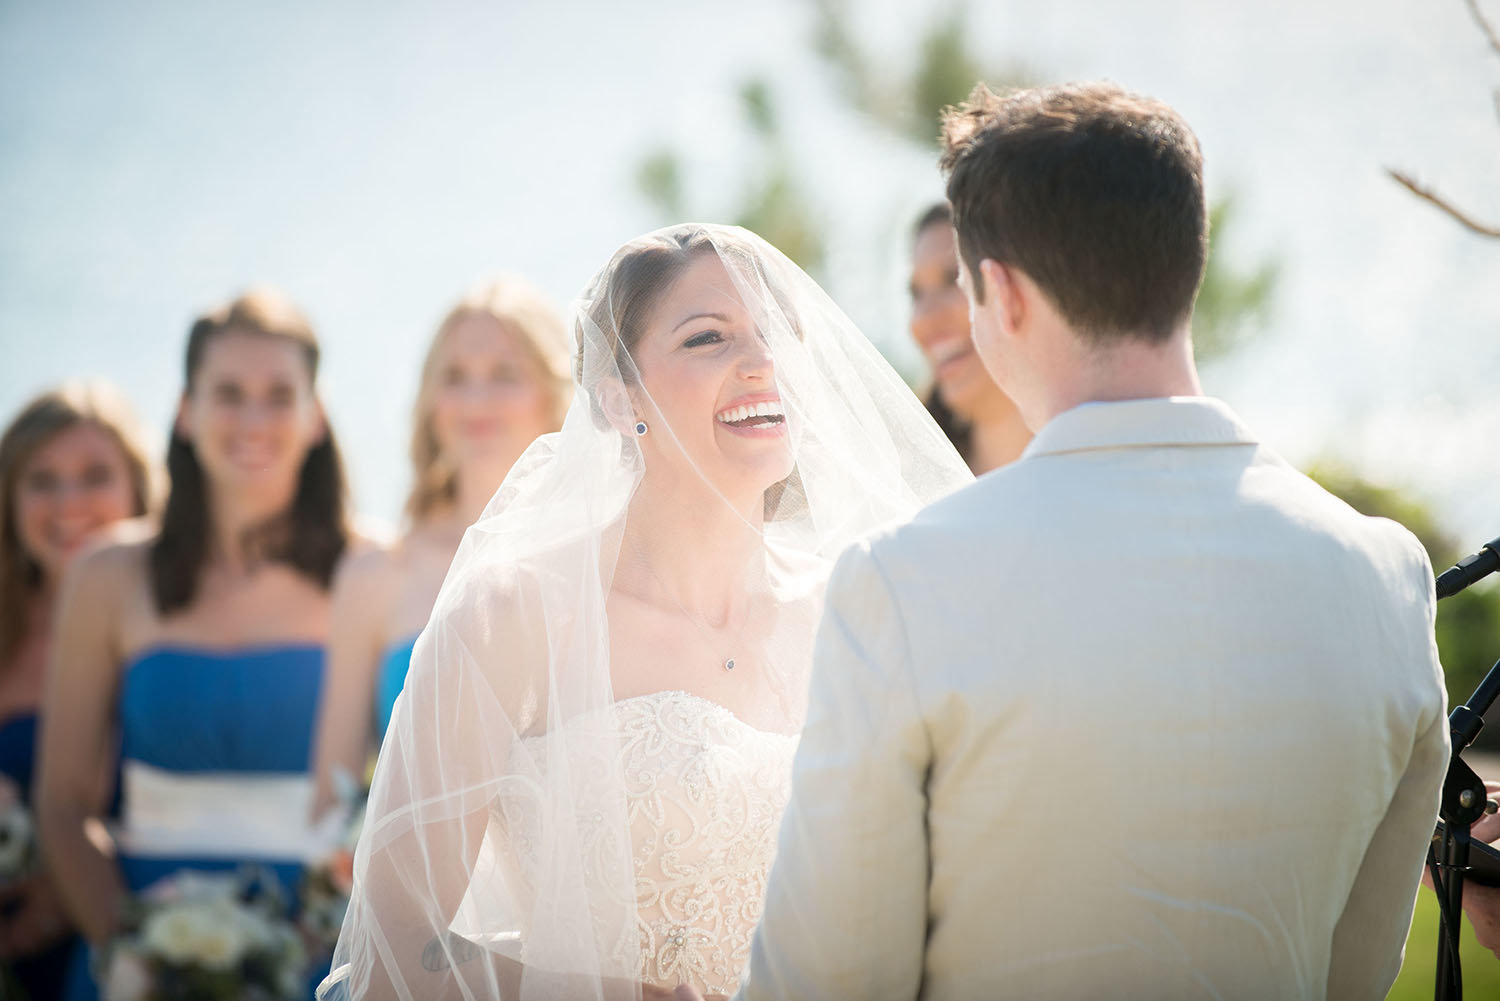 Bride laughing during her vows at a wedding in Seagrove Park Del Mar